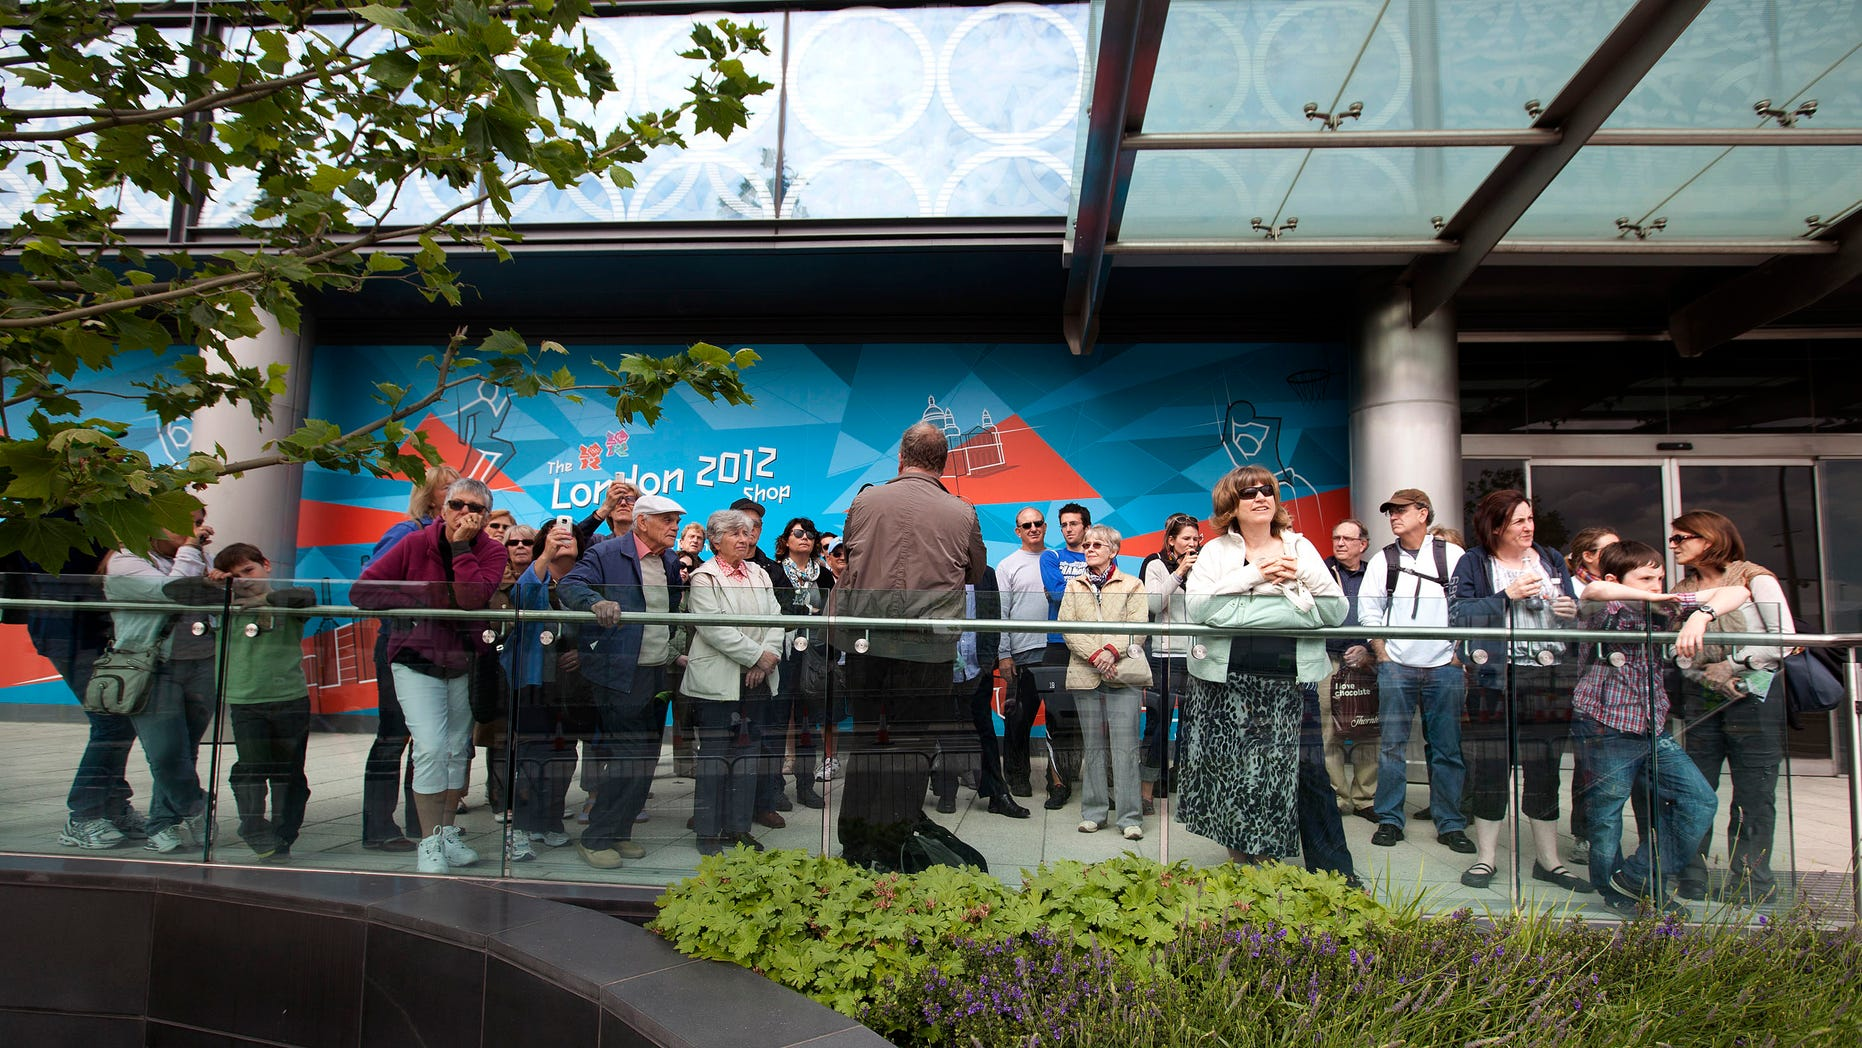 June 13, 2012: In this photo tour guide Andy Rashleigh, back to camera, talks to his tour group  near the London 2012 Olympic Park.